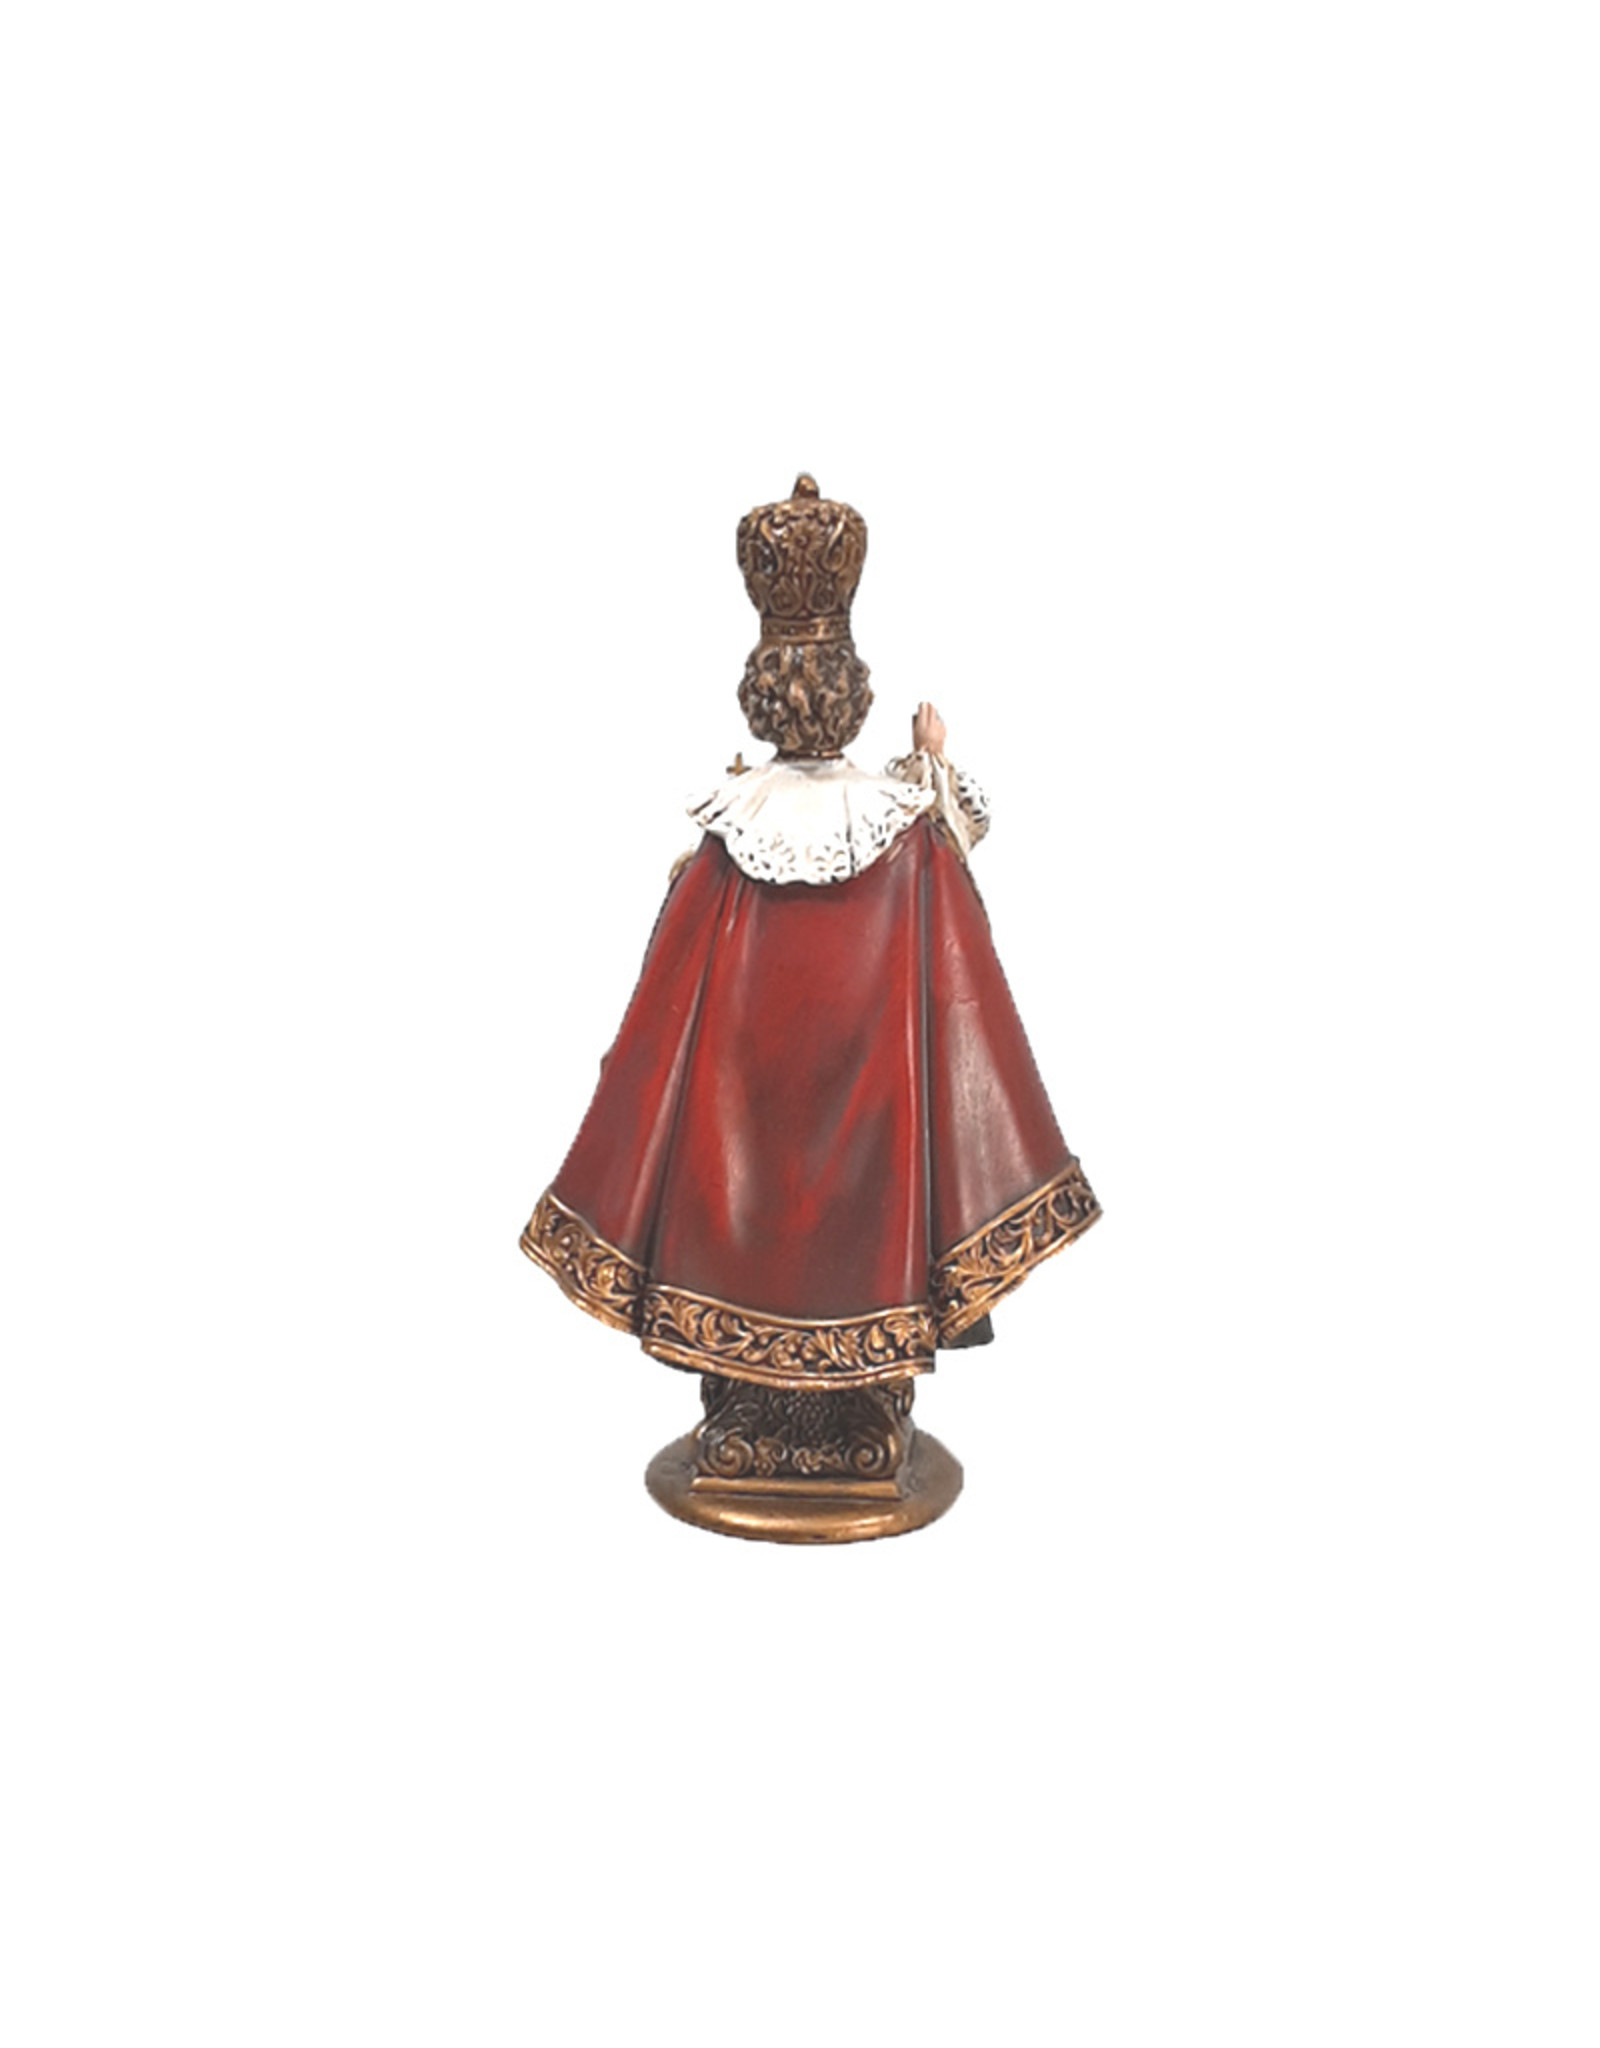 Joseph's Studio / Roman Statue Infant Jesus of Prague (15cm)